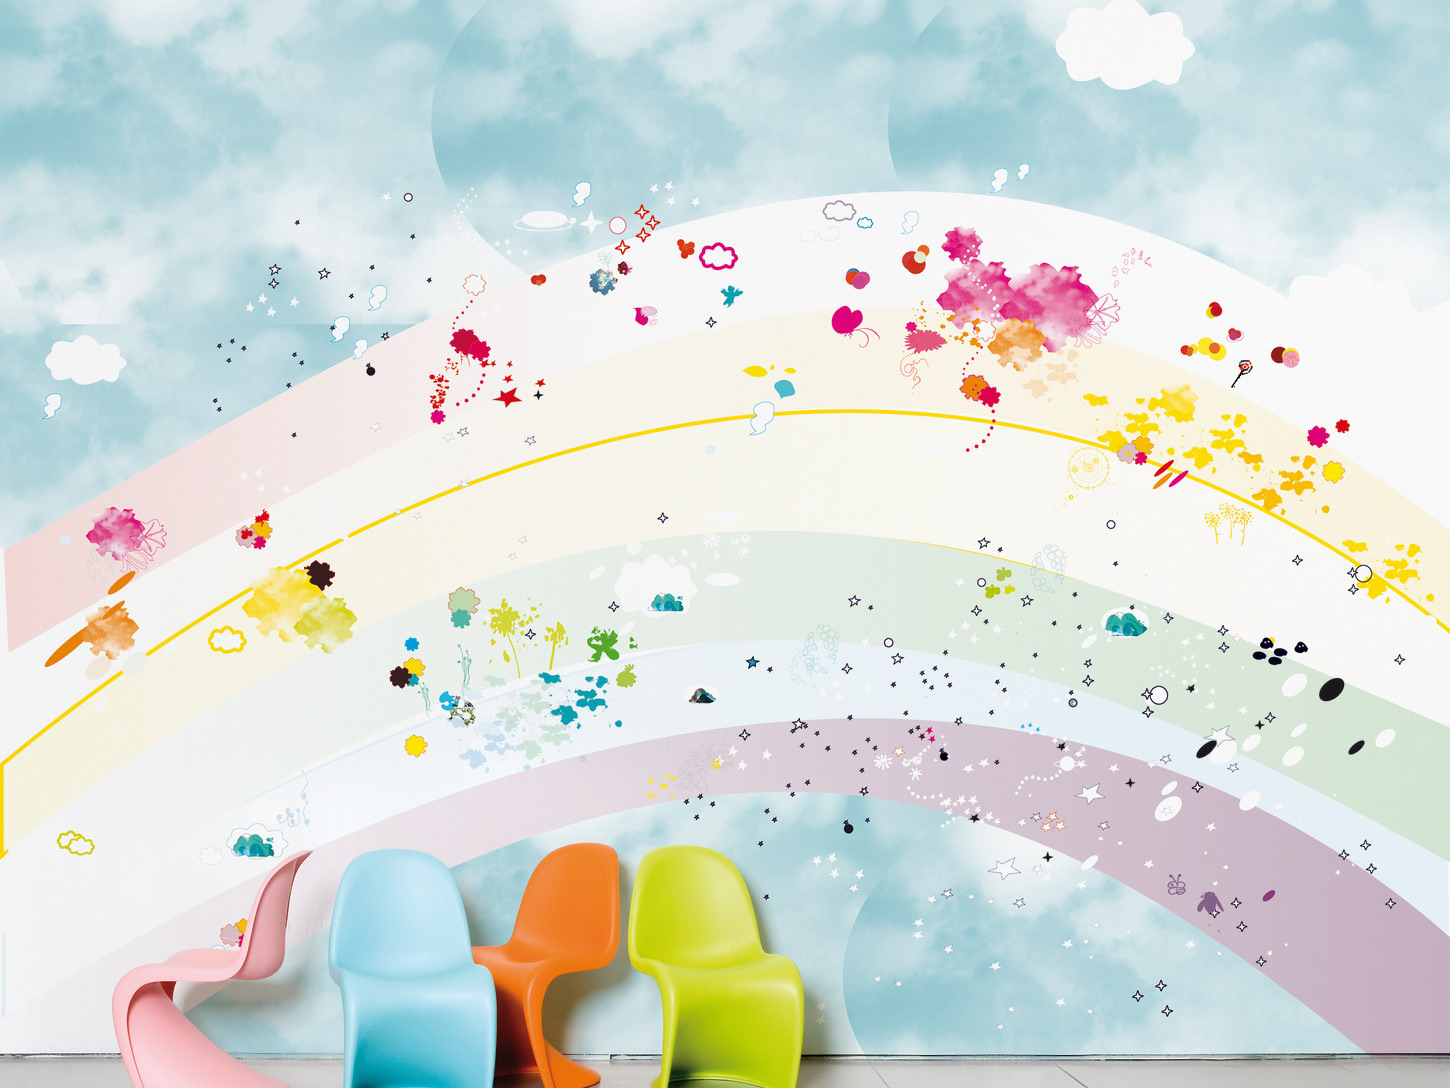 24 Kids Wallpapers Images Pictures Design Trends 1450x1088